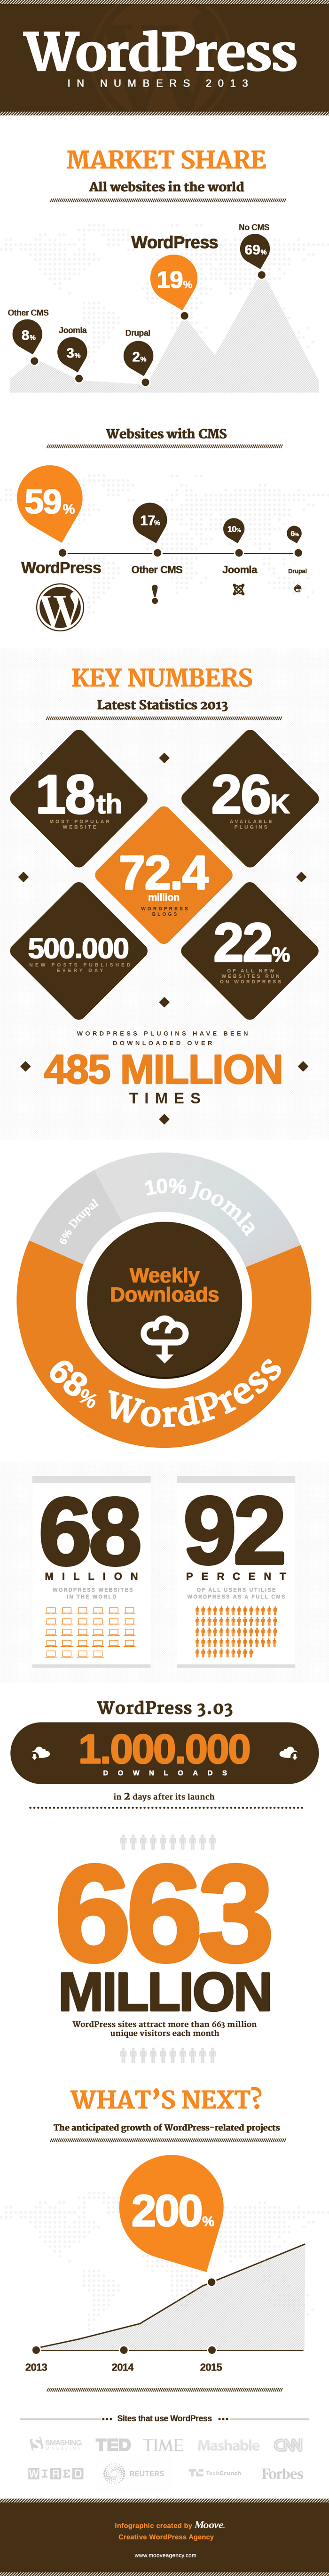 WordPress_Infographic_20131